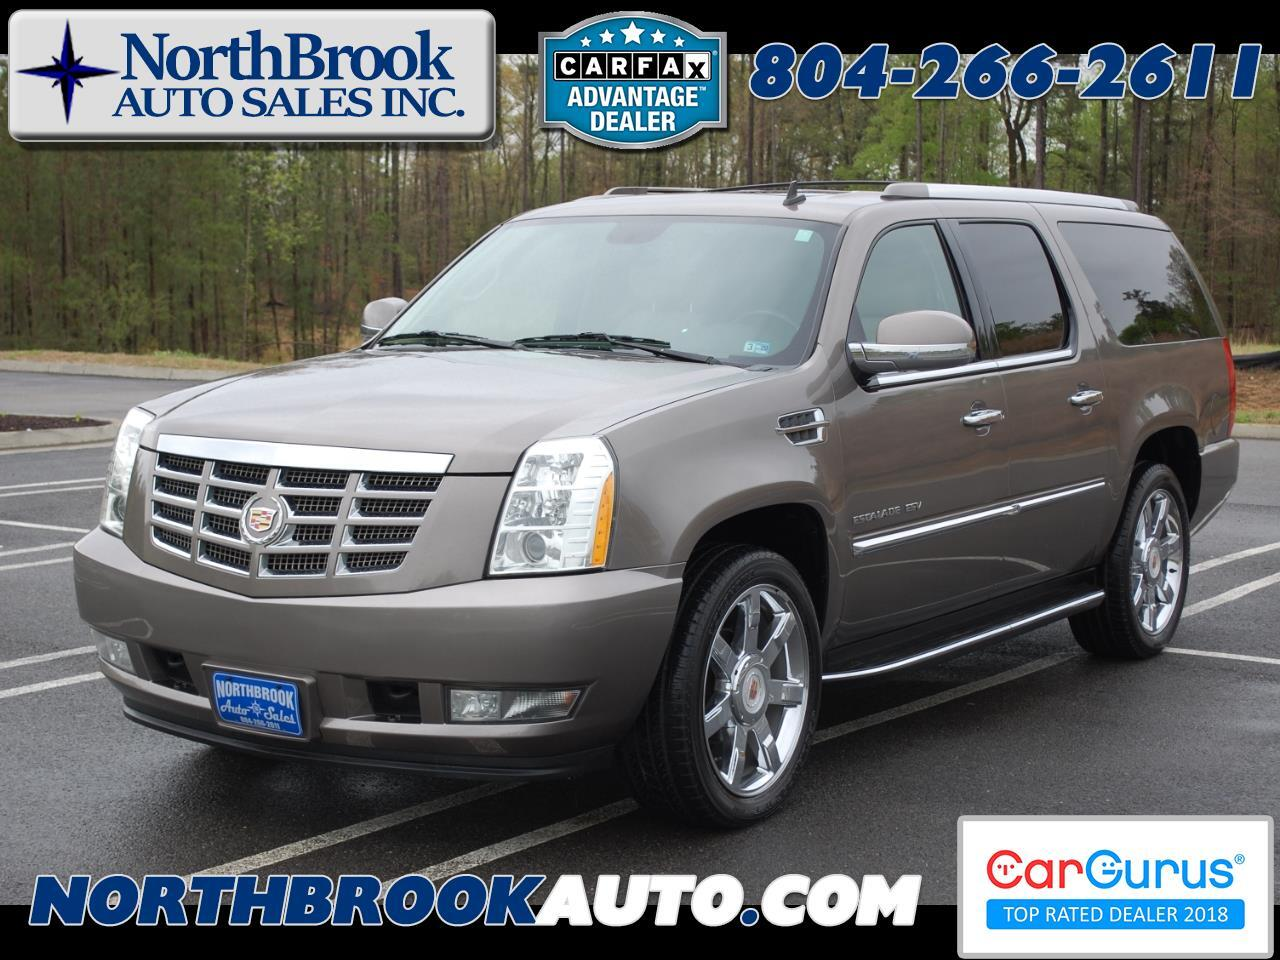 2013 Cadillac Escalade ESV AWD 4dr Luxury